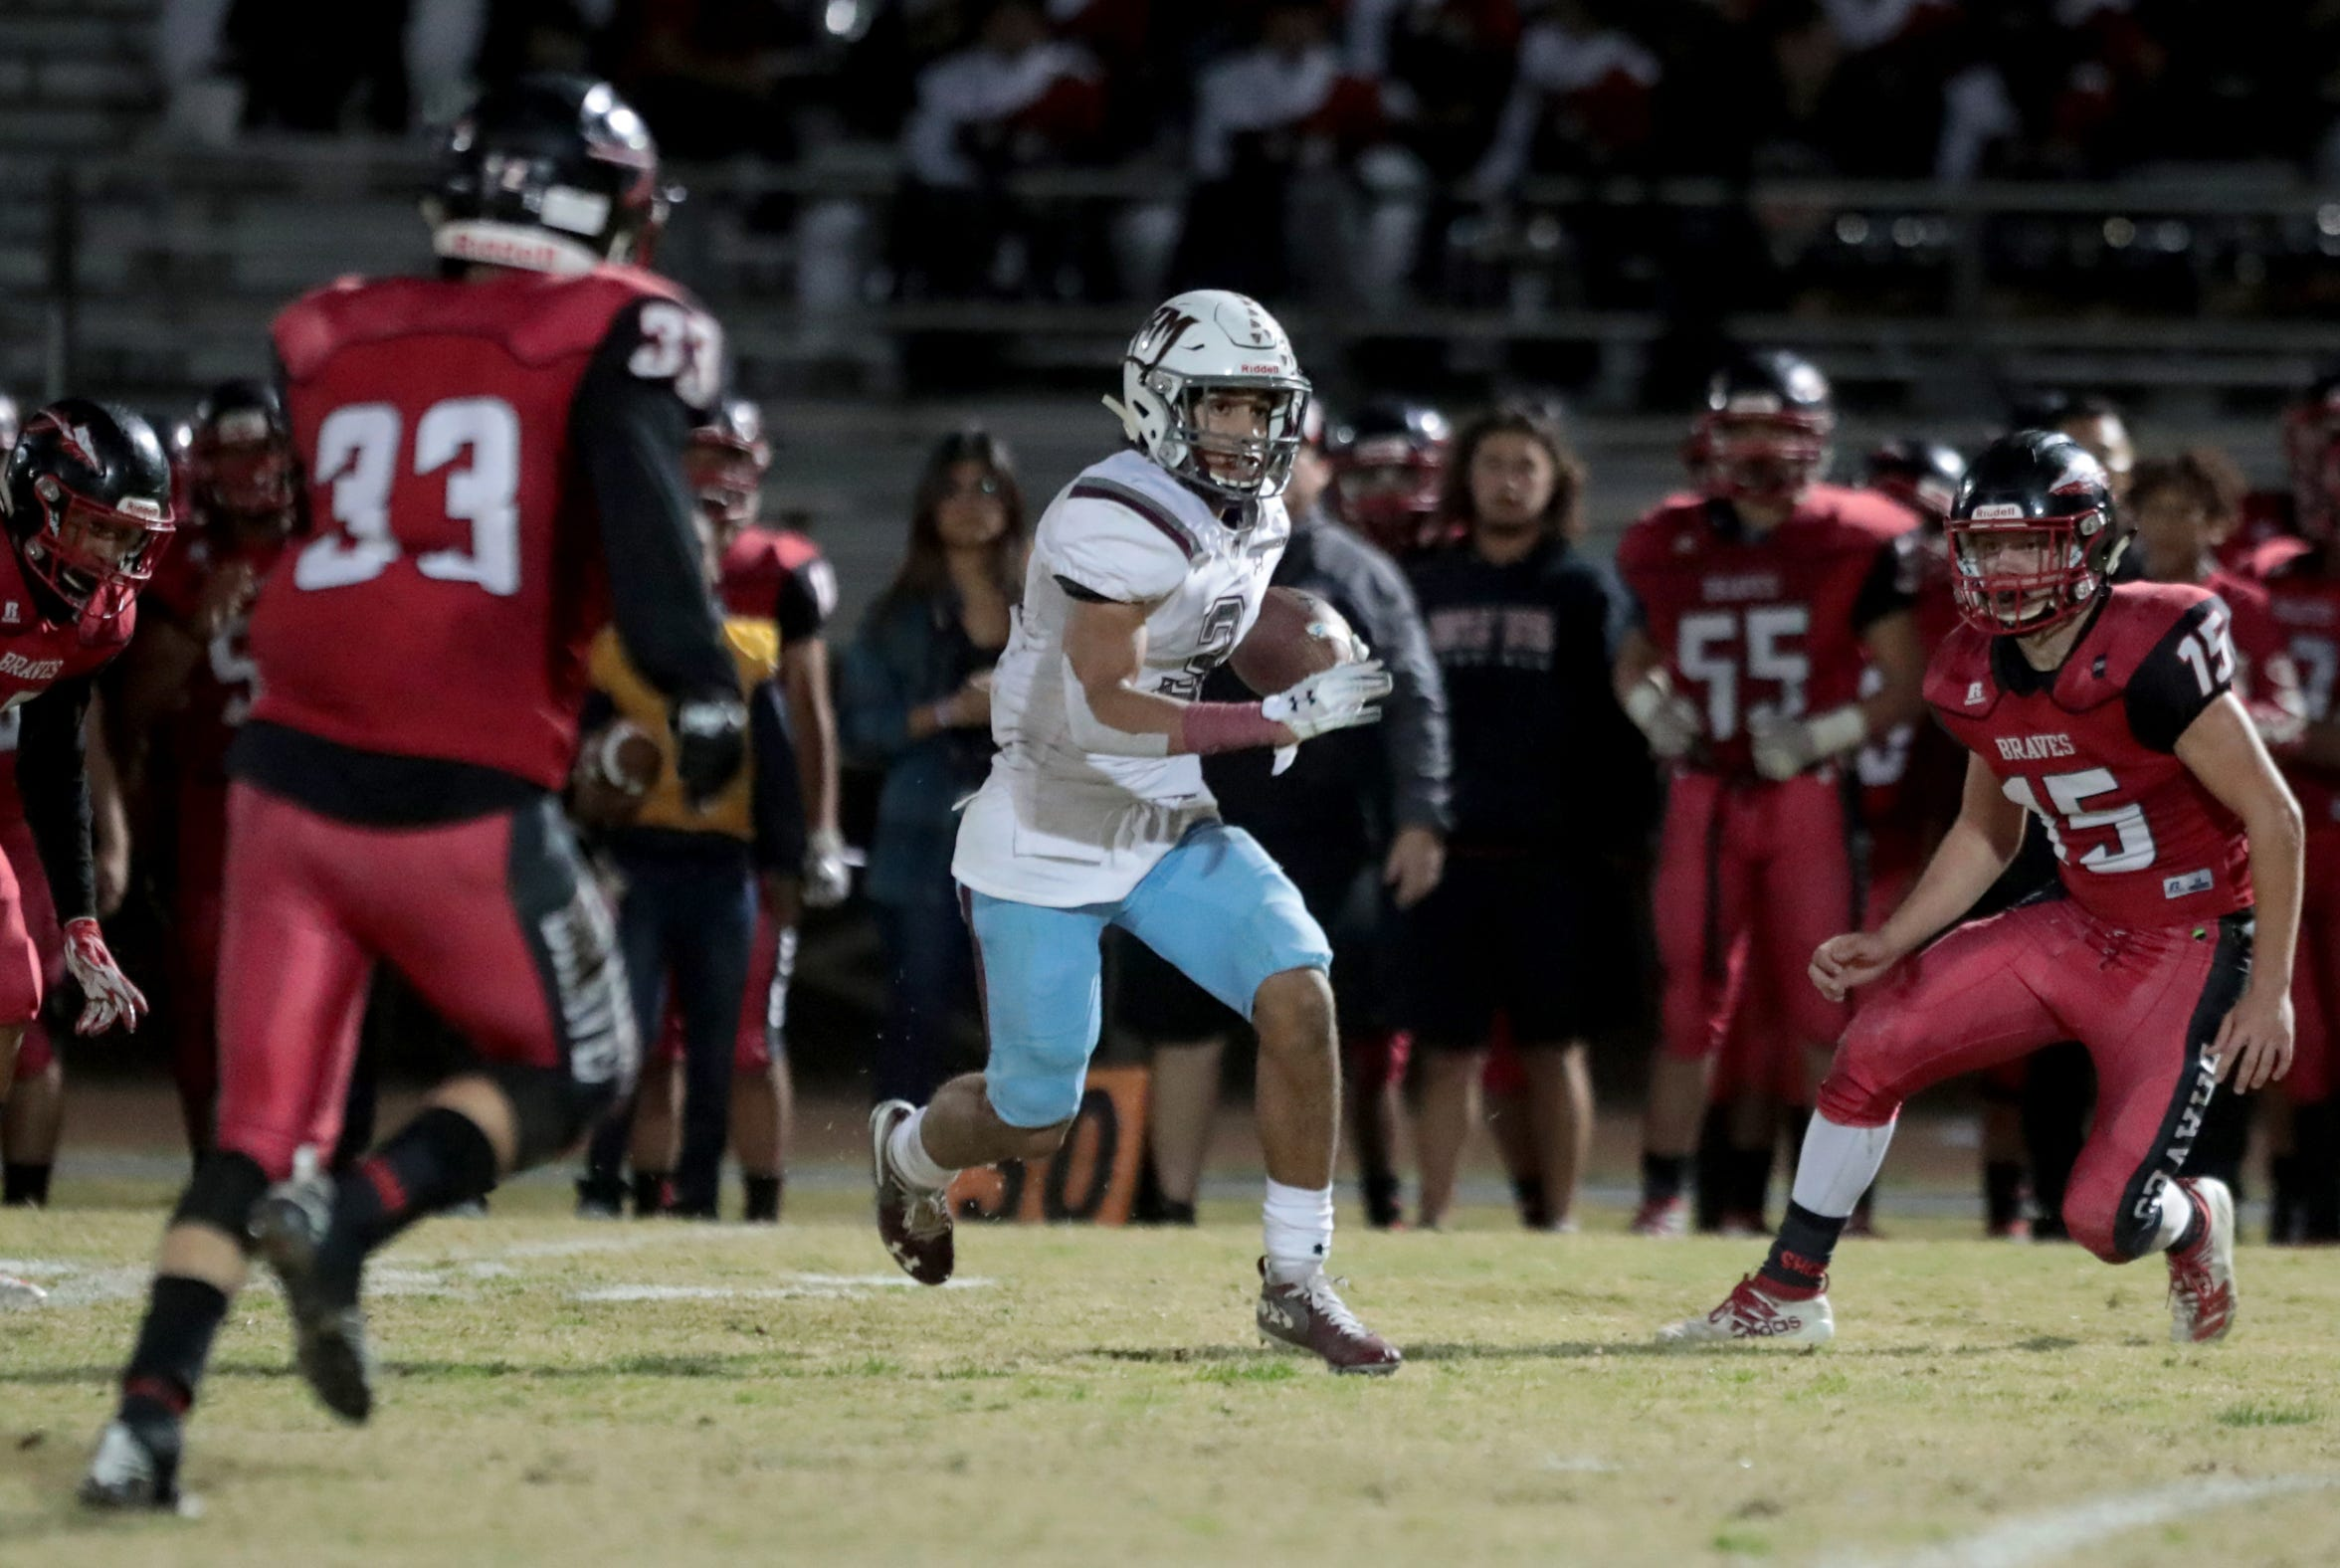 Jevin Dorsey was a 34-game starter at Rancho Mirage High School.